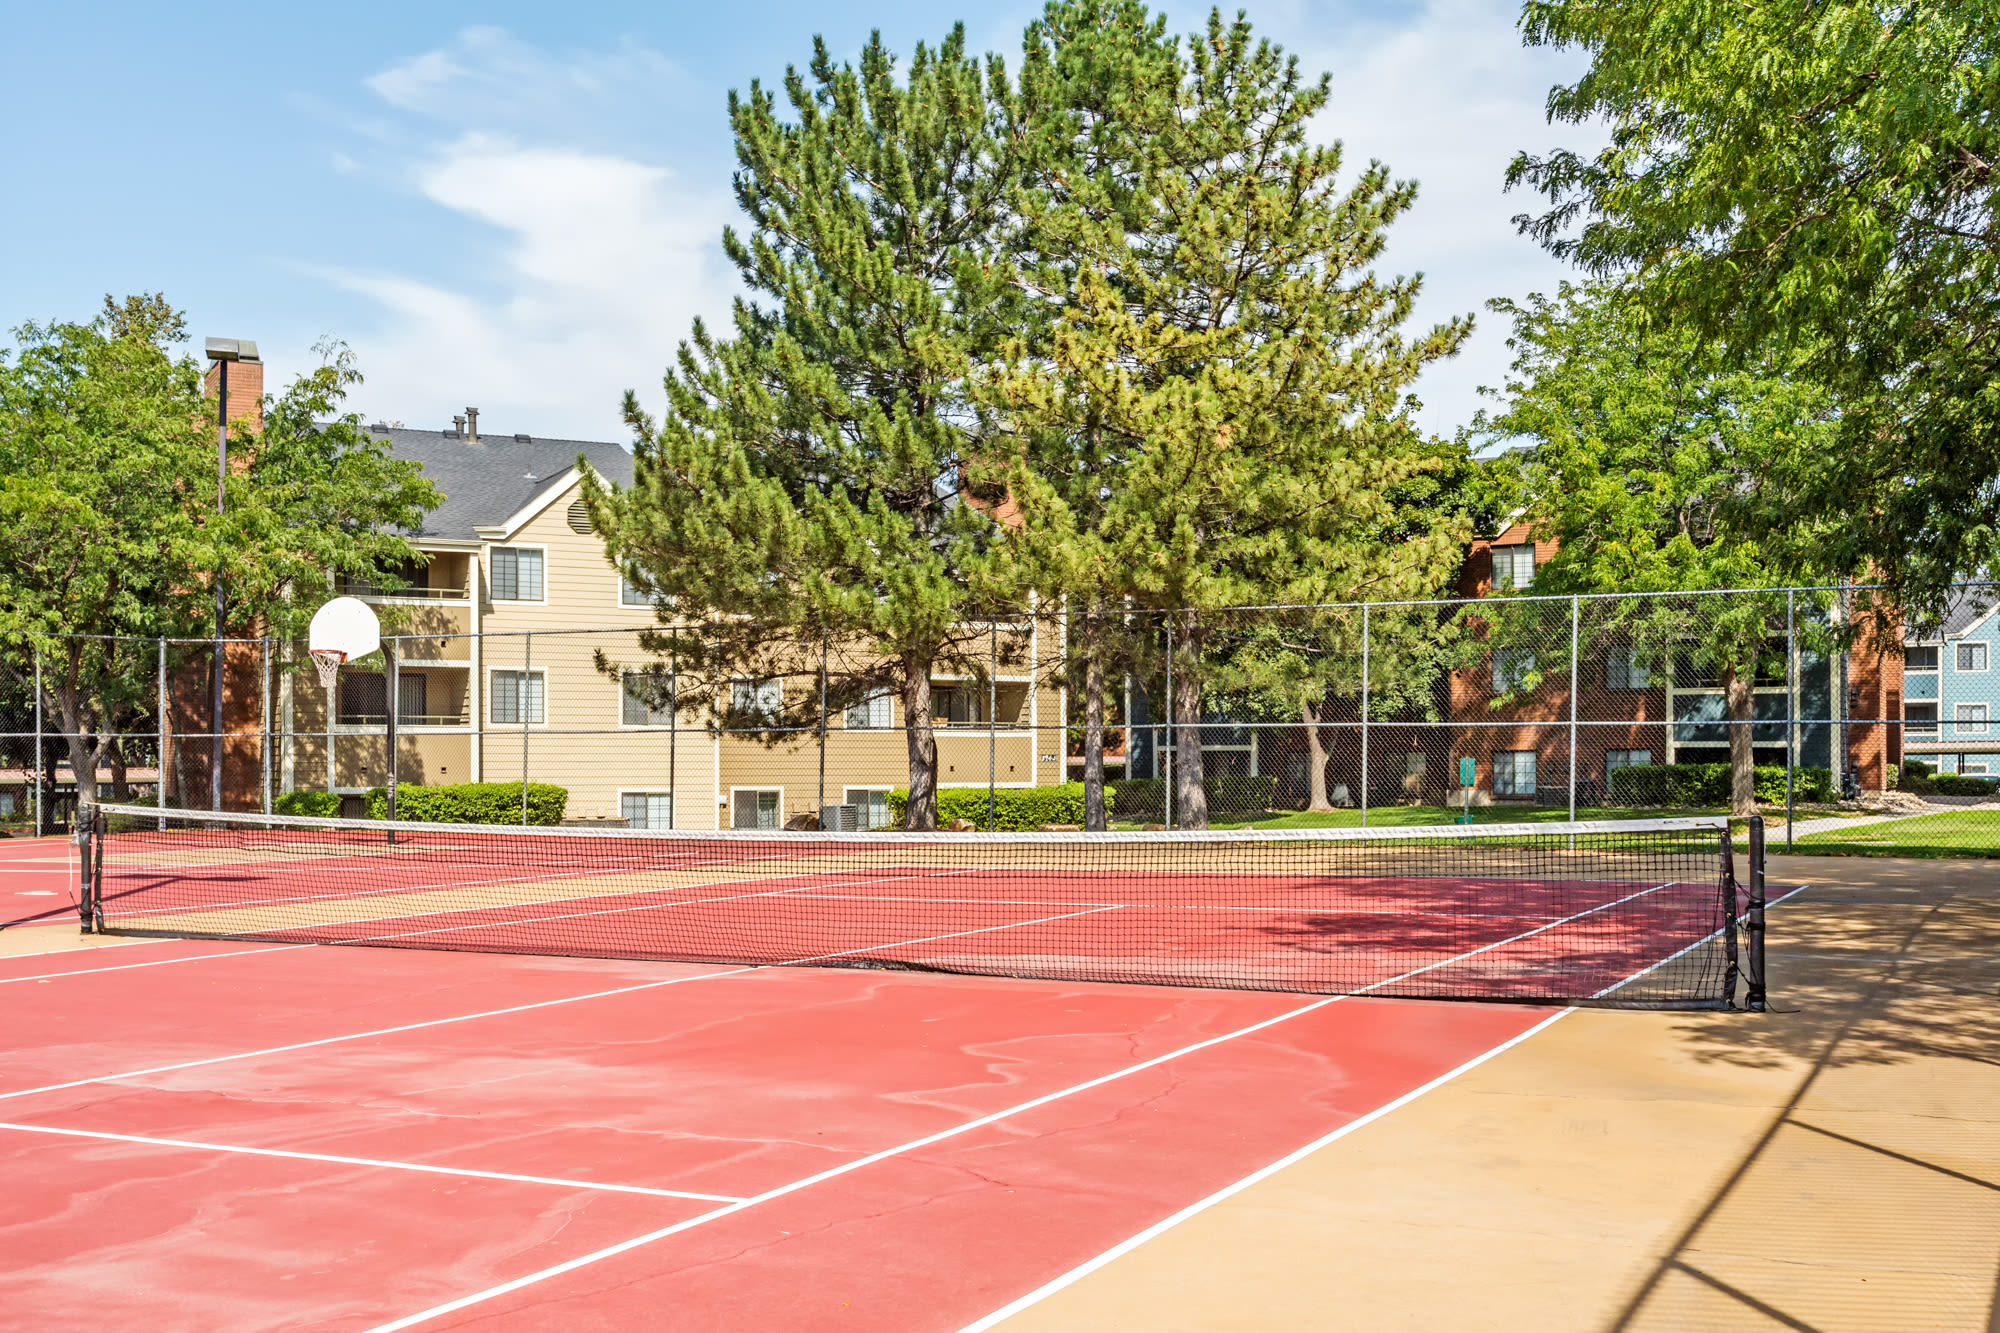 Tennis Court at Royal Ridge Apartments in Midvale